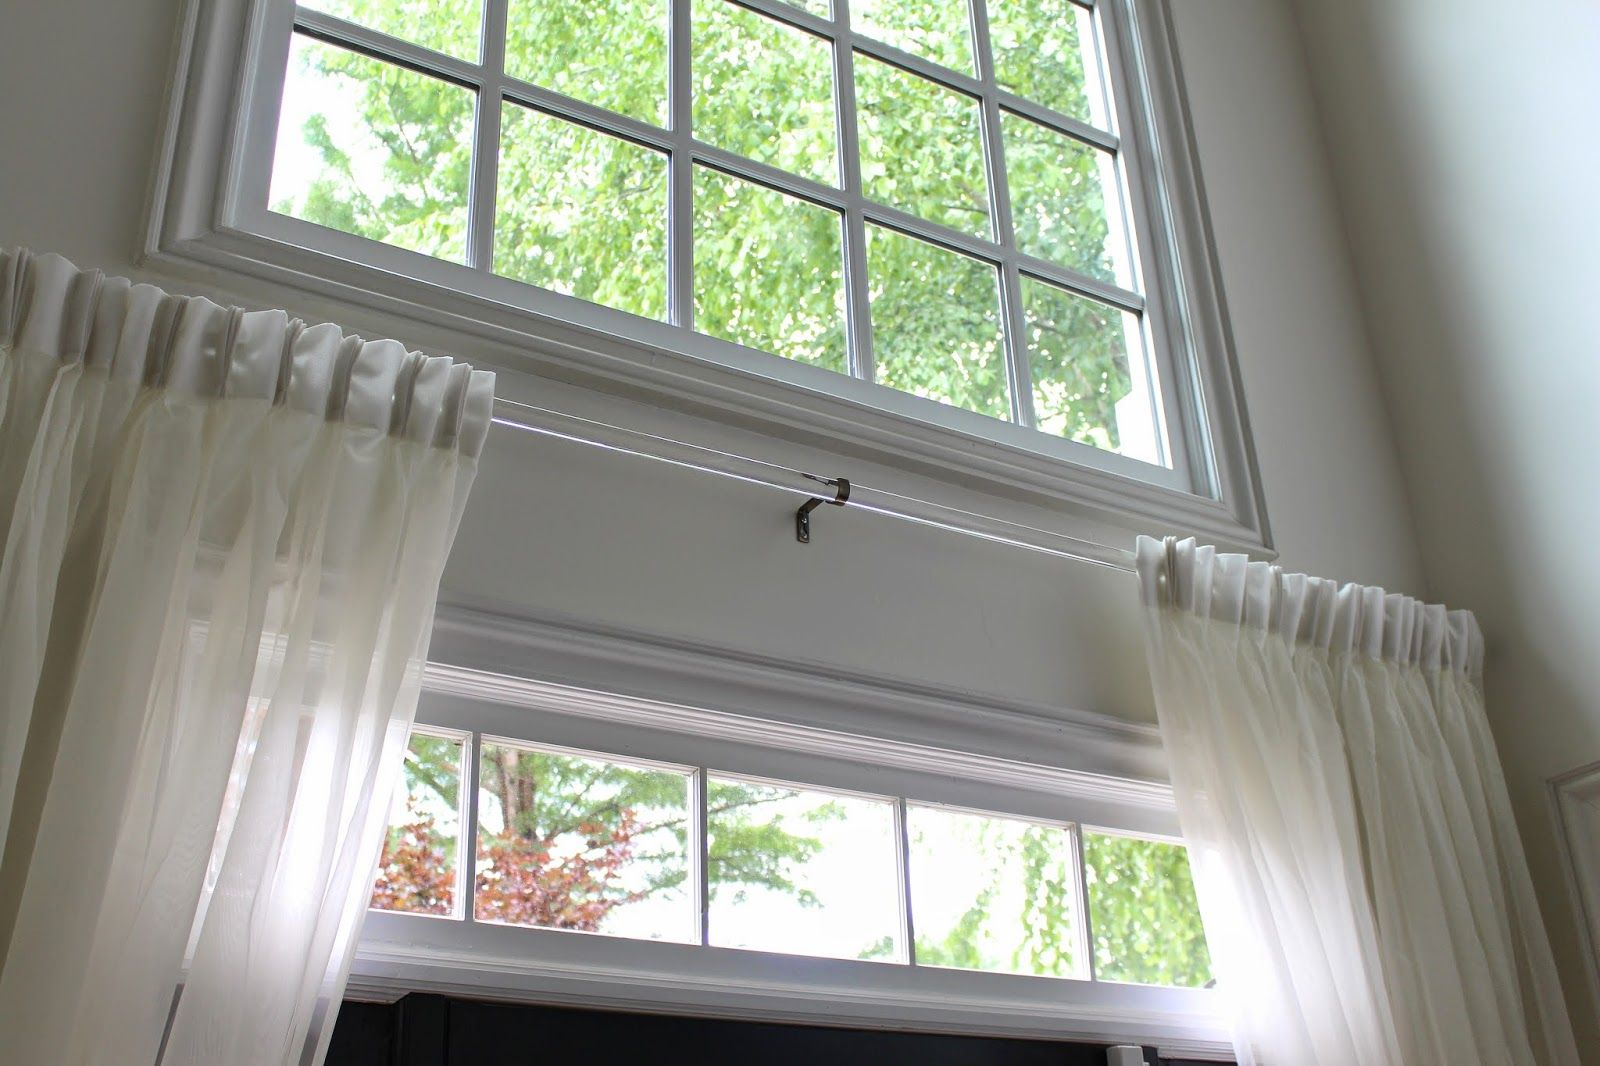 Clear sash curtain rods - Lucite Acrylic Rods Sag So Much In The Middle From Their Own Weight So